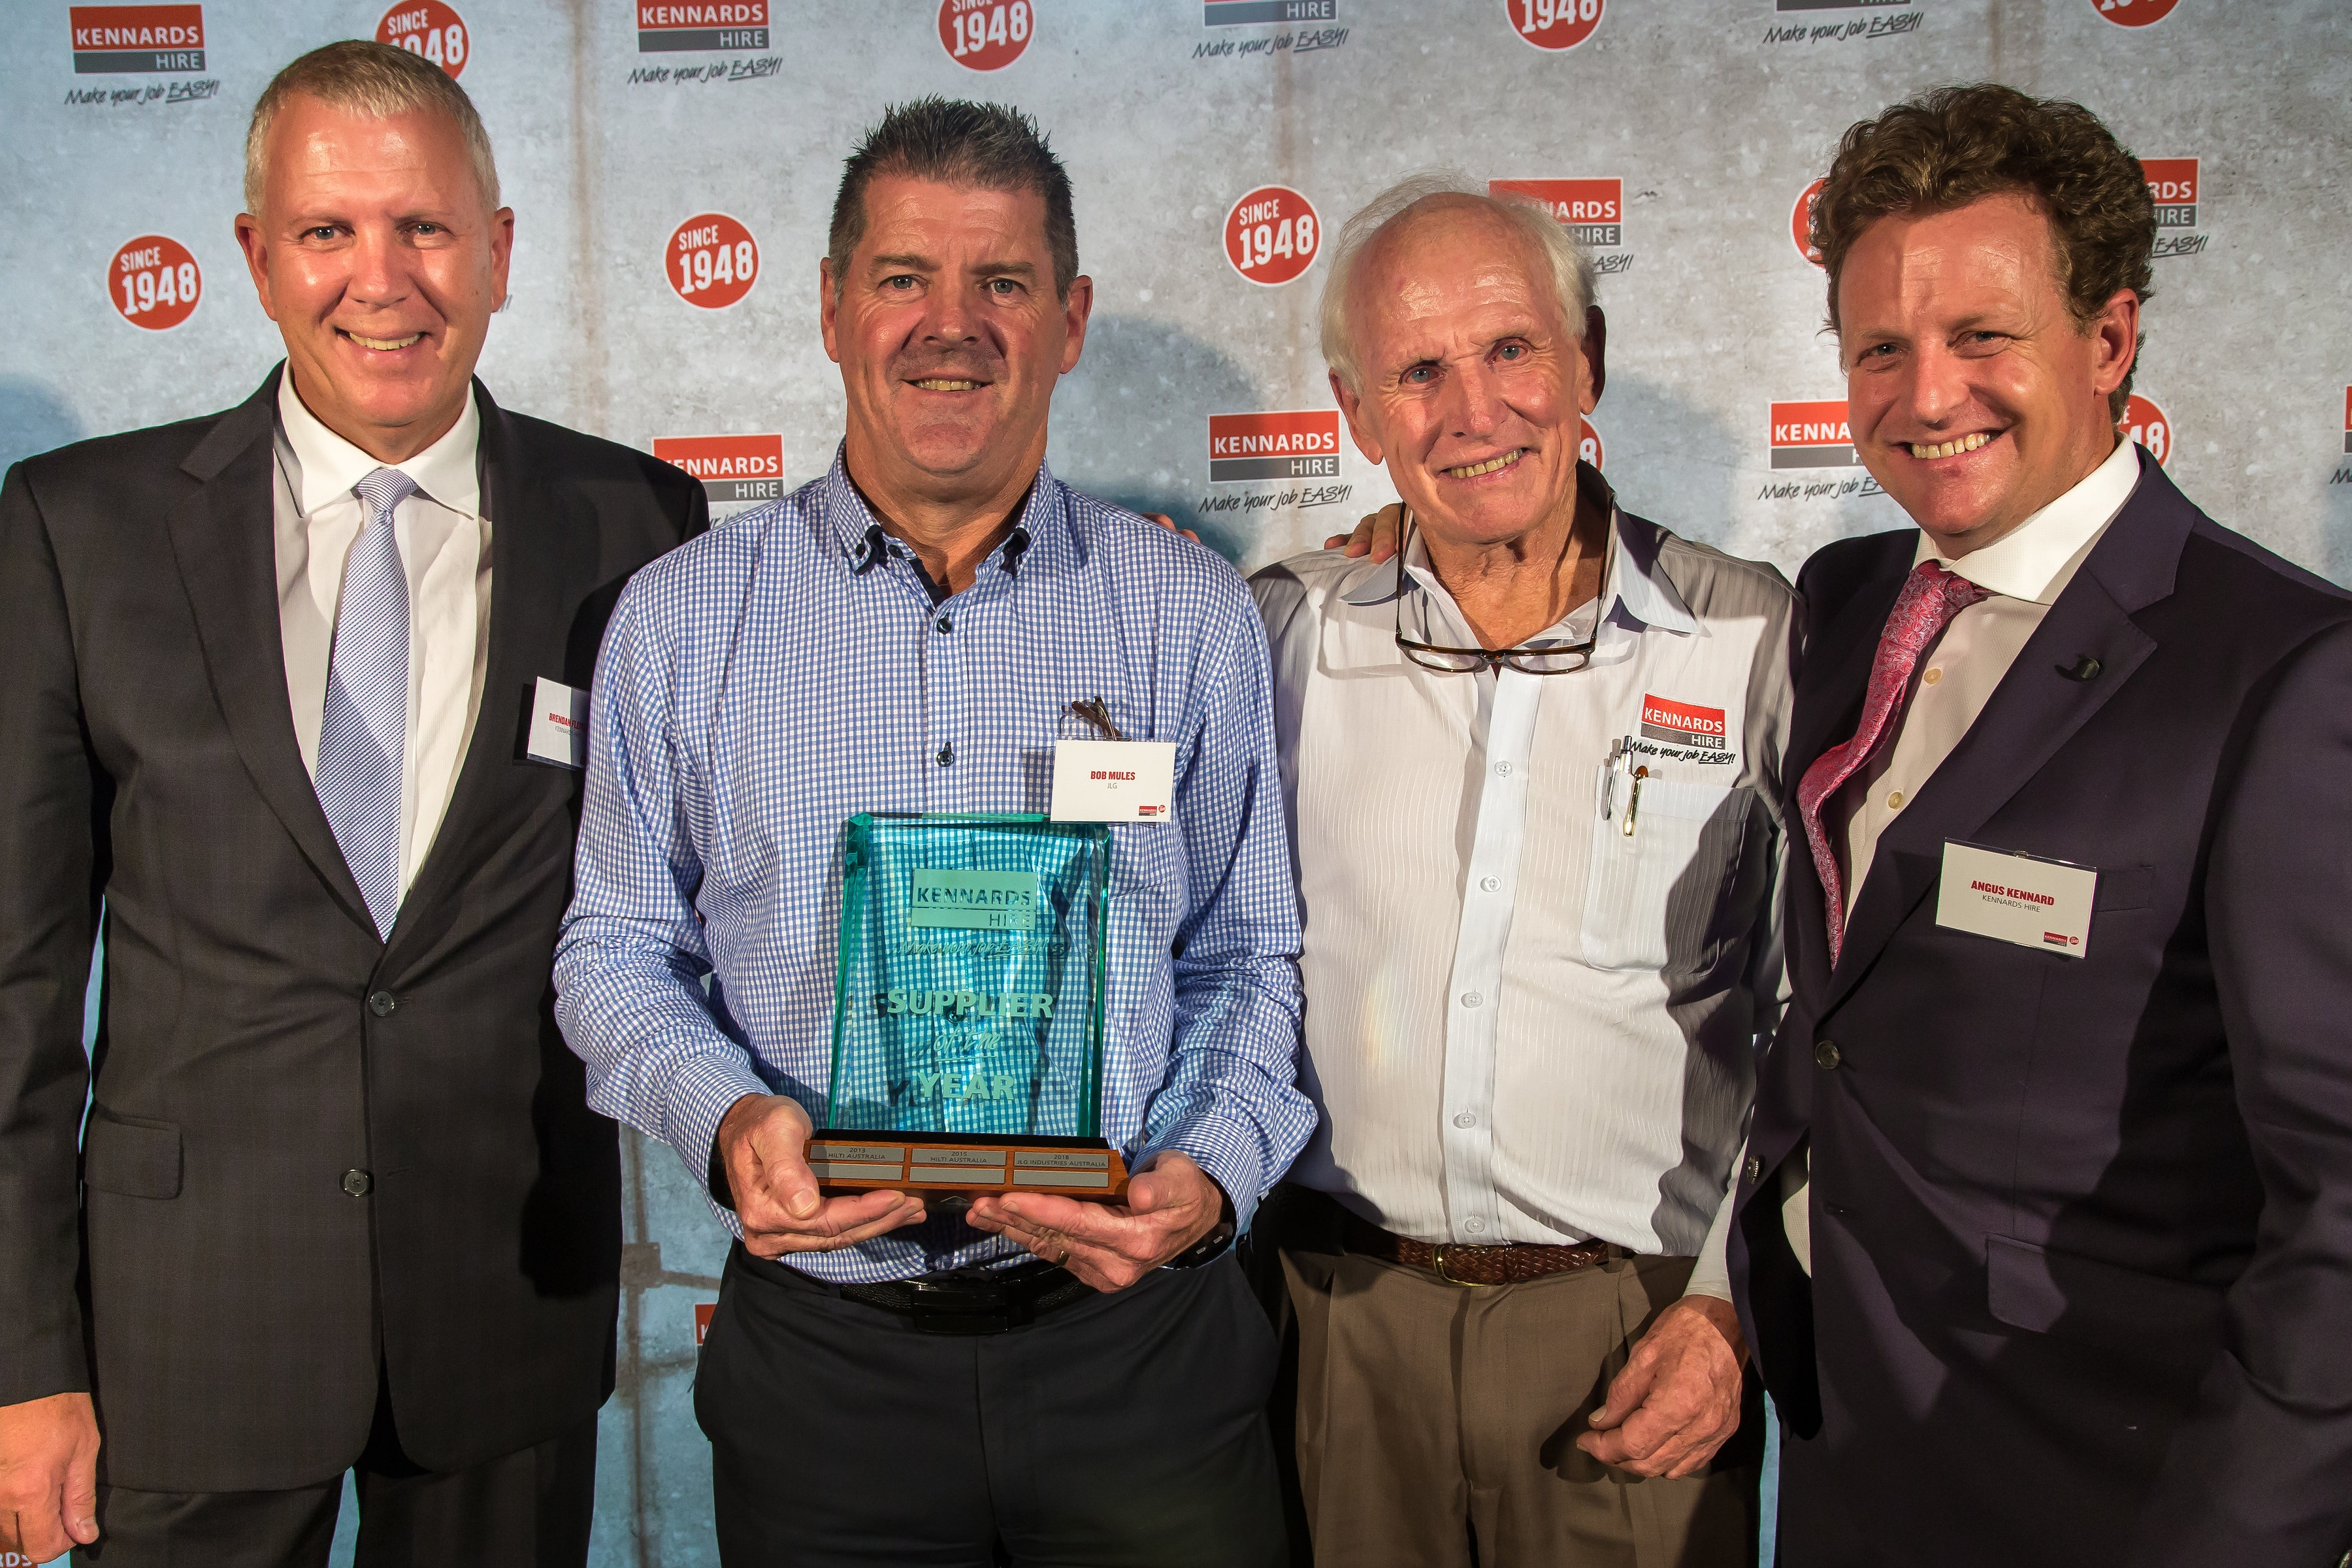 Kennards Hire Supplier of the Year award winners